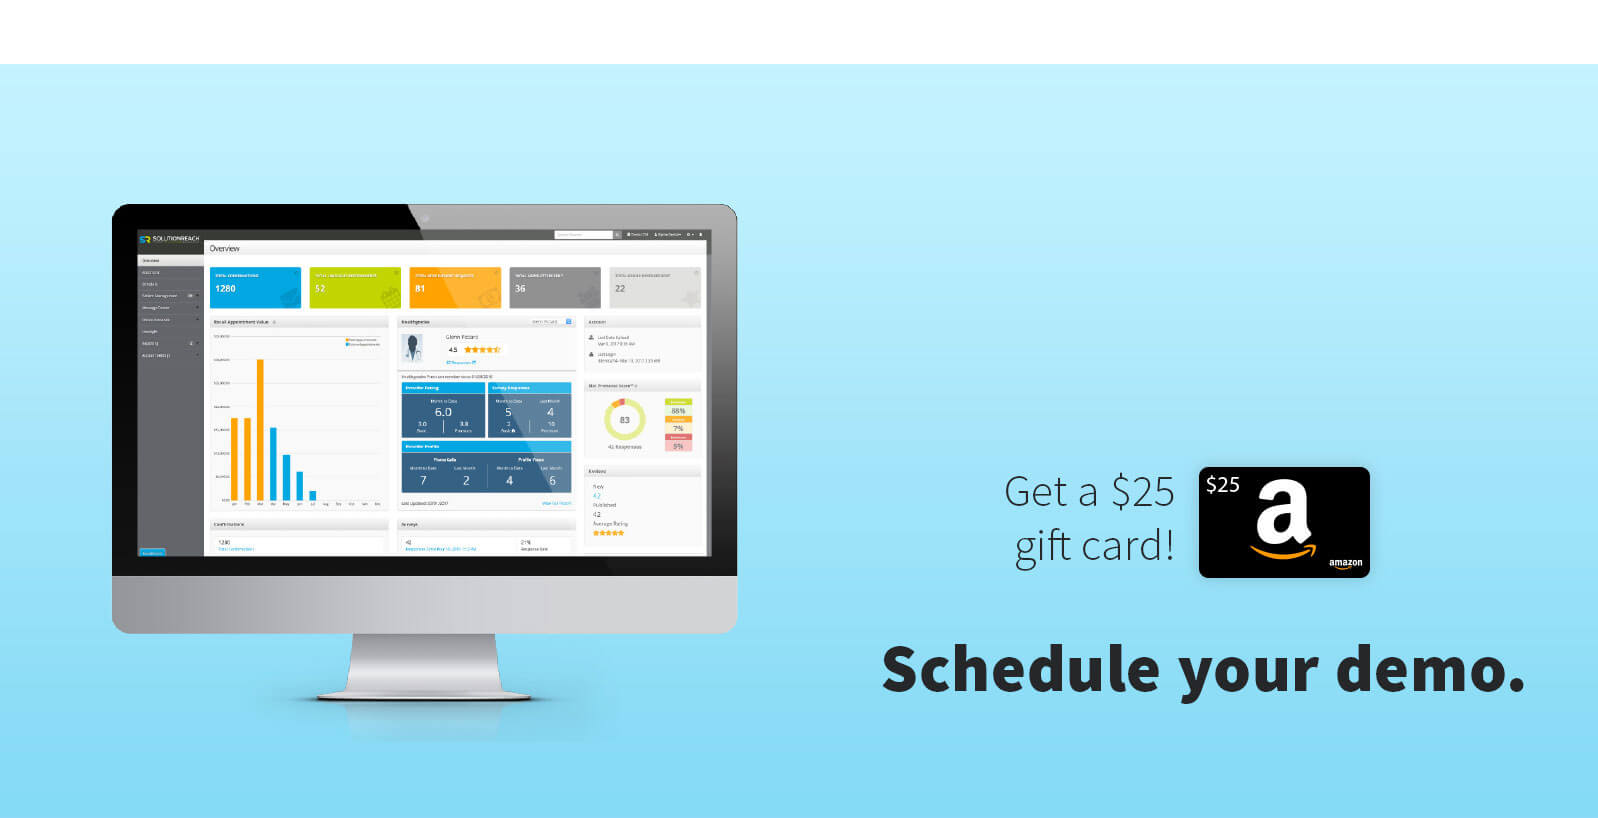 Schedule your demo. Get a $25 gift card!